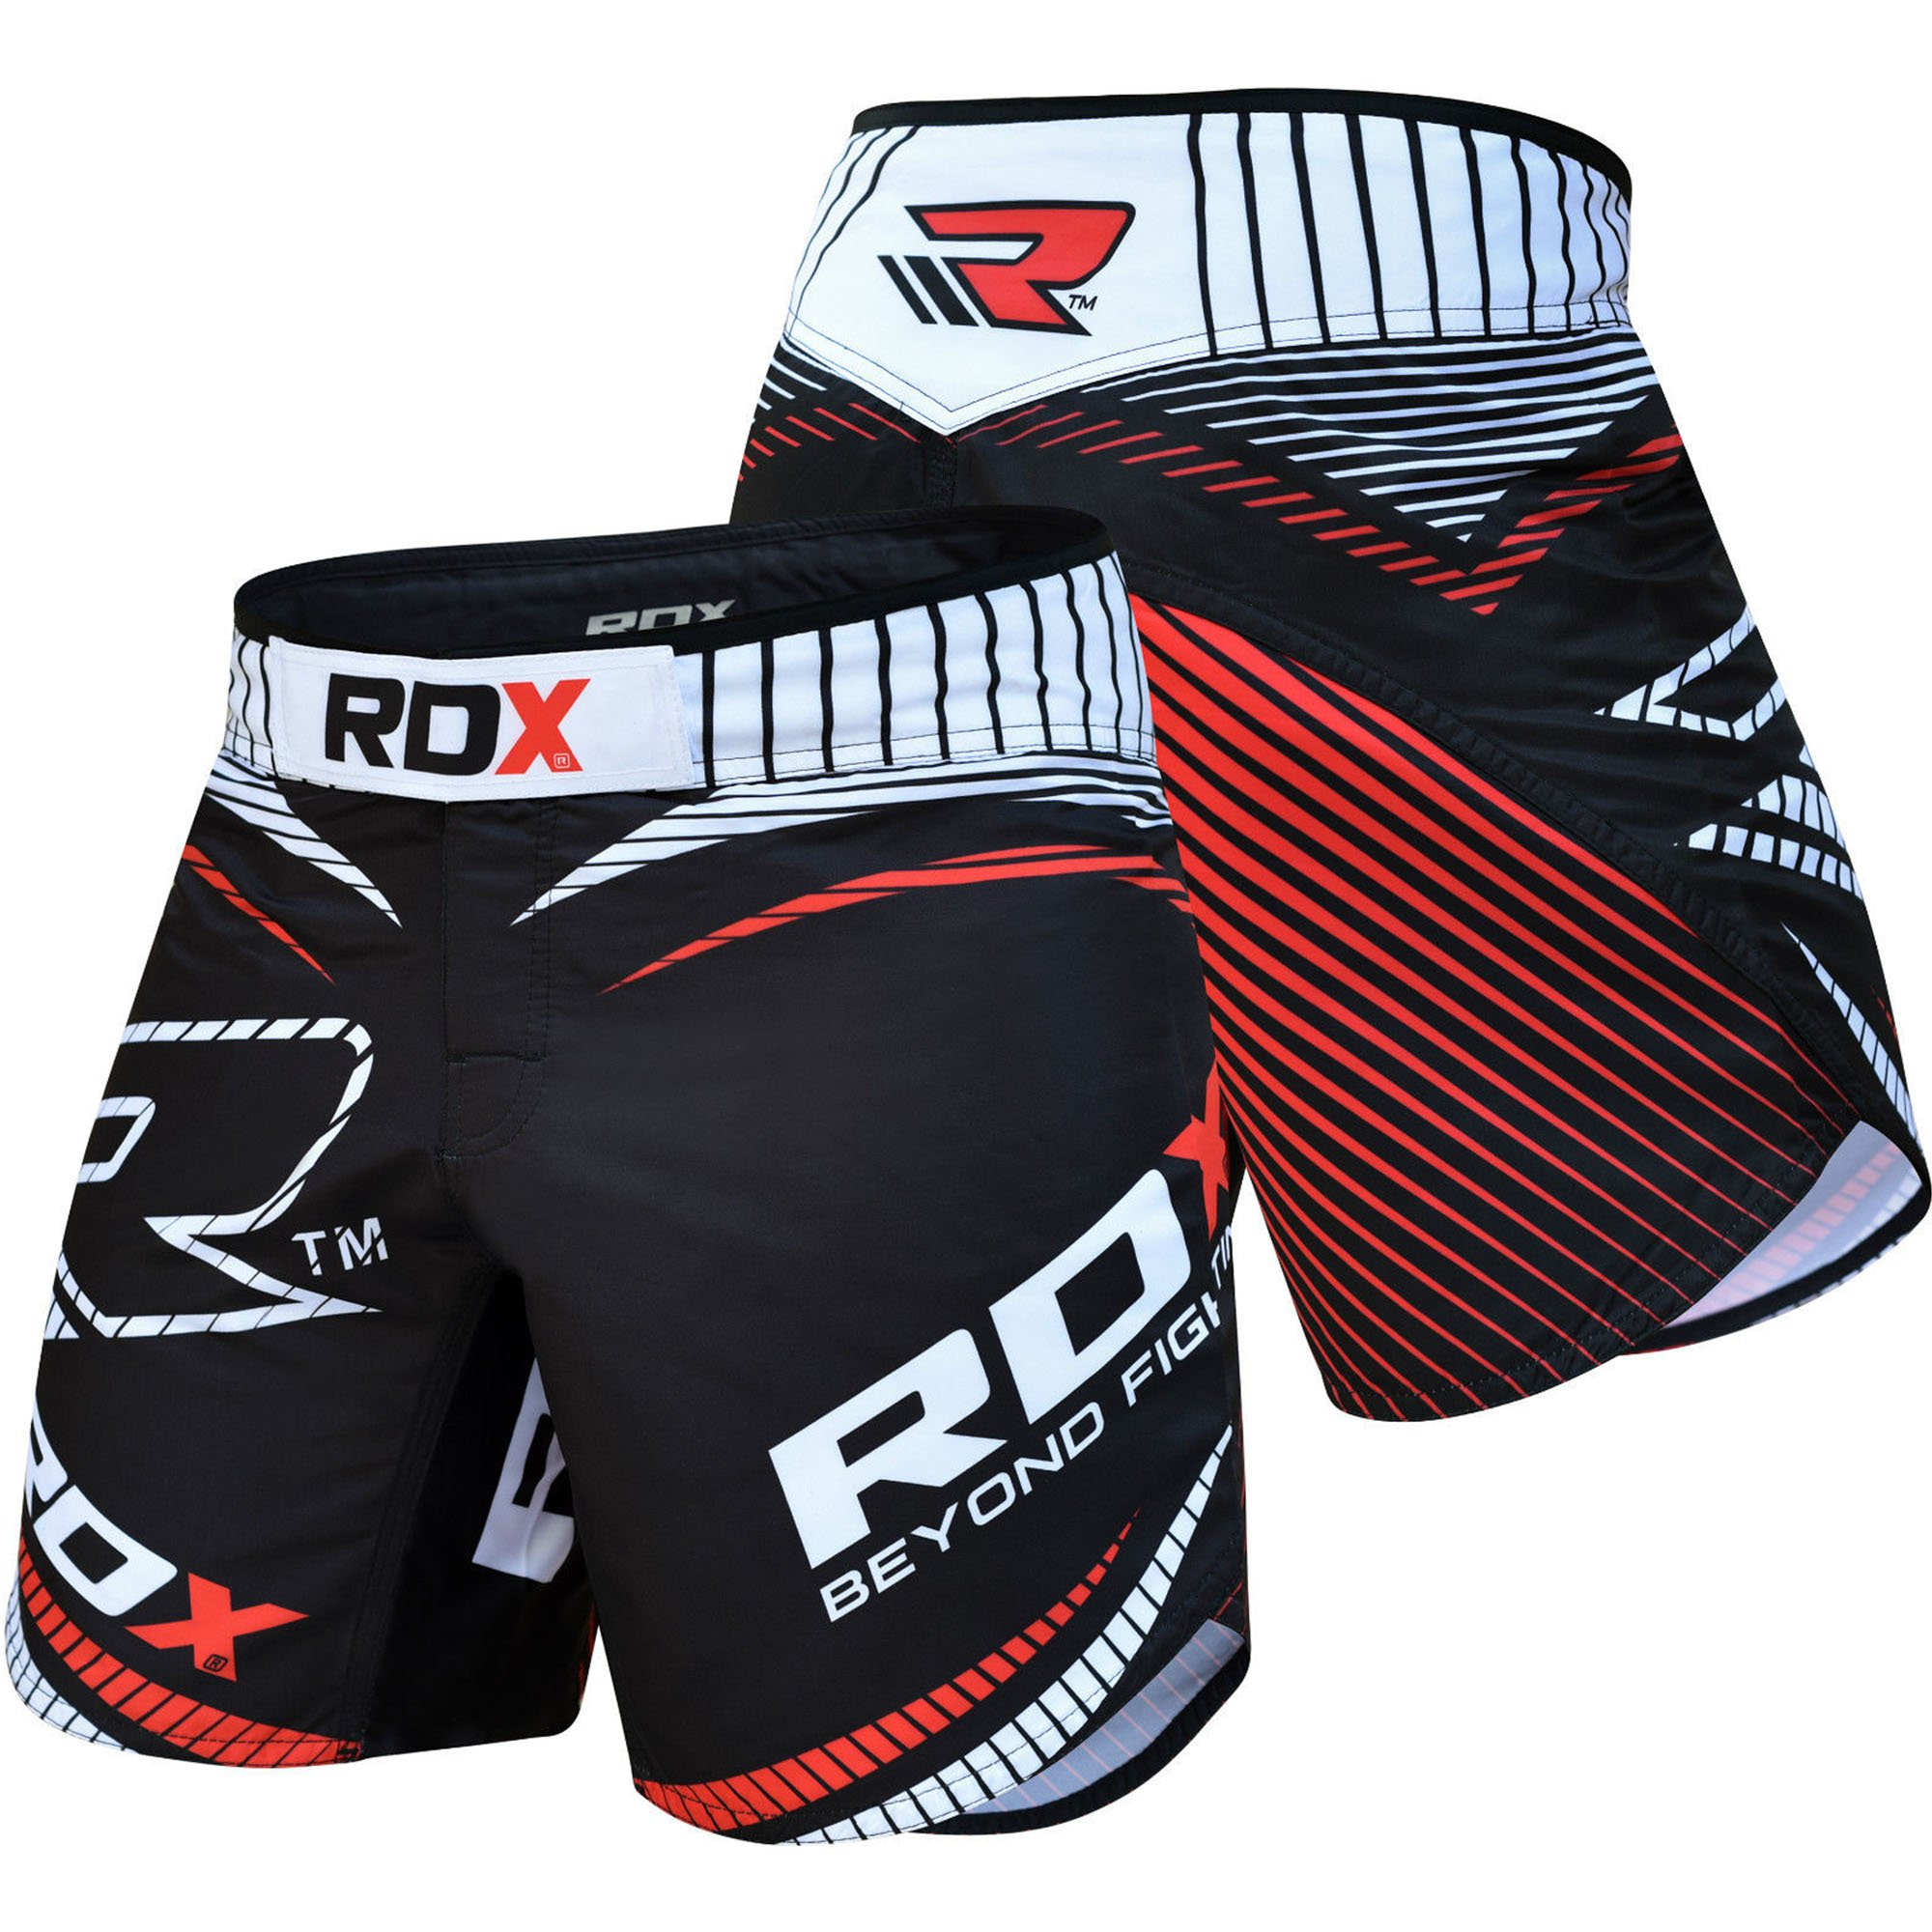 RDX R1 MMA Stretch Shorts, Red, Double Extra Large